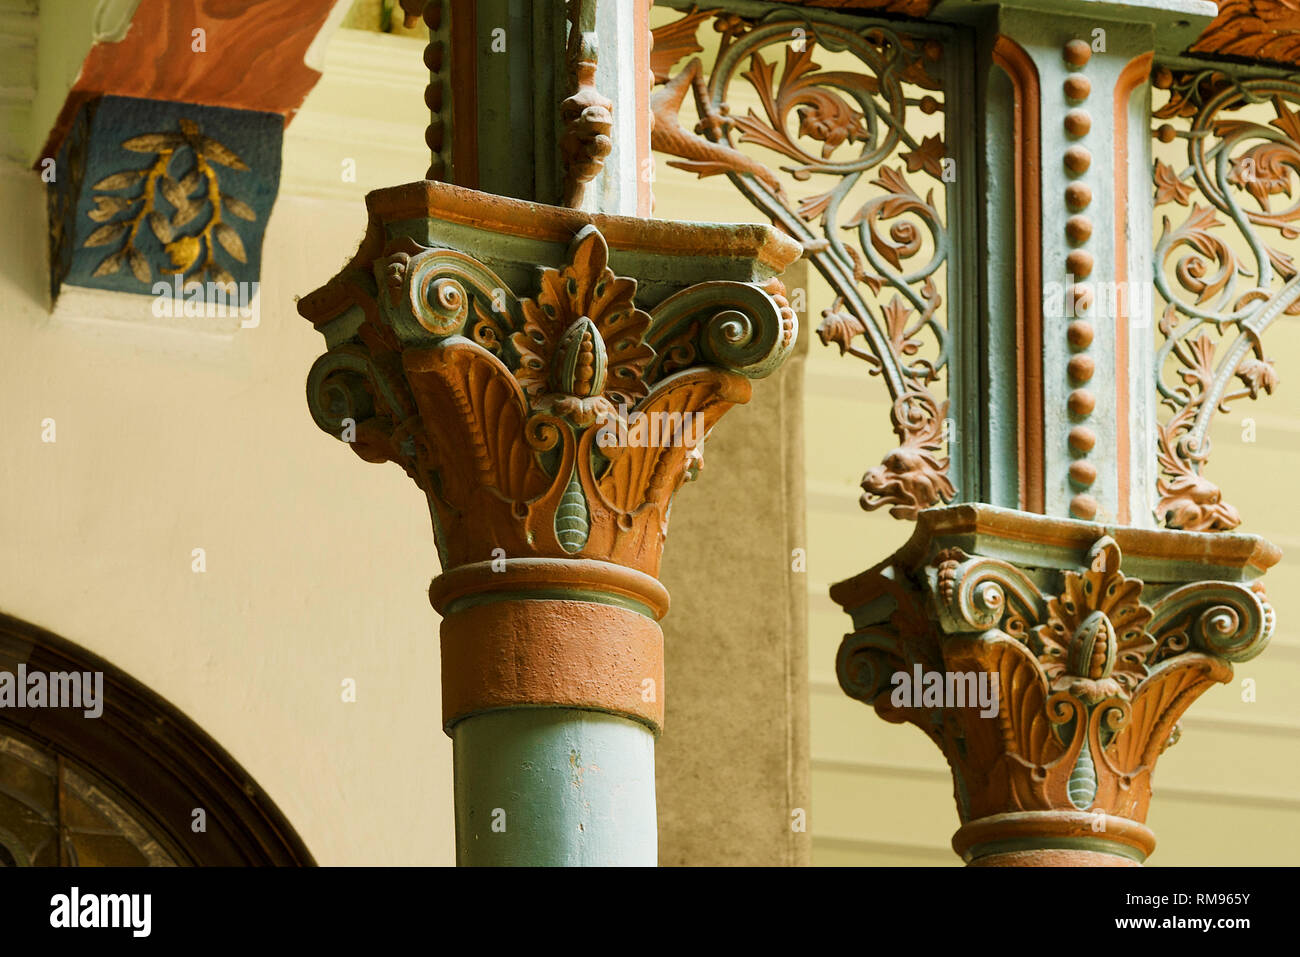 capitals of the cast iron columns in the main central courtyard in the Cheong Fatt Tze, The Blue Mansion in George Town, Penang, Malaysia - Stock Image